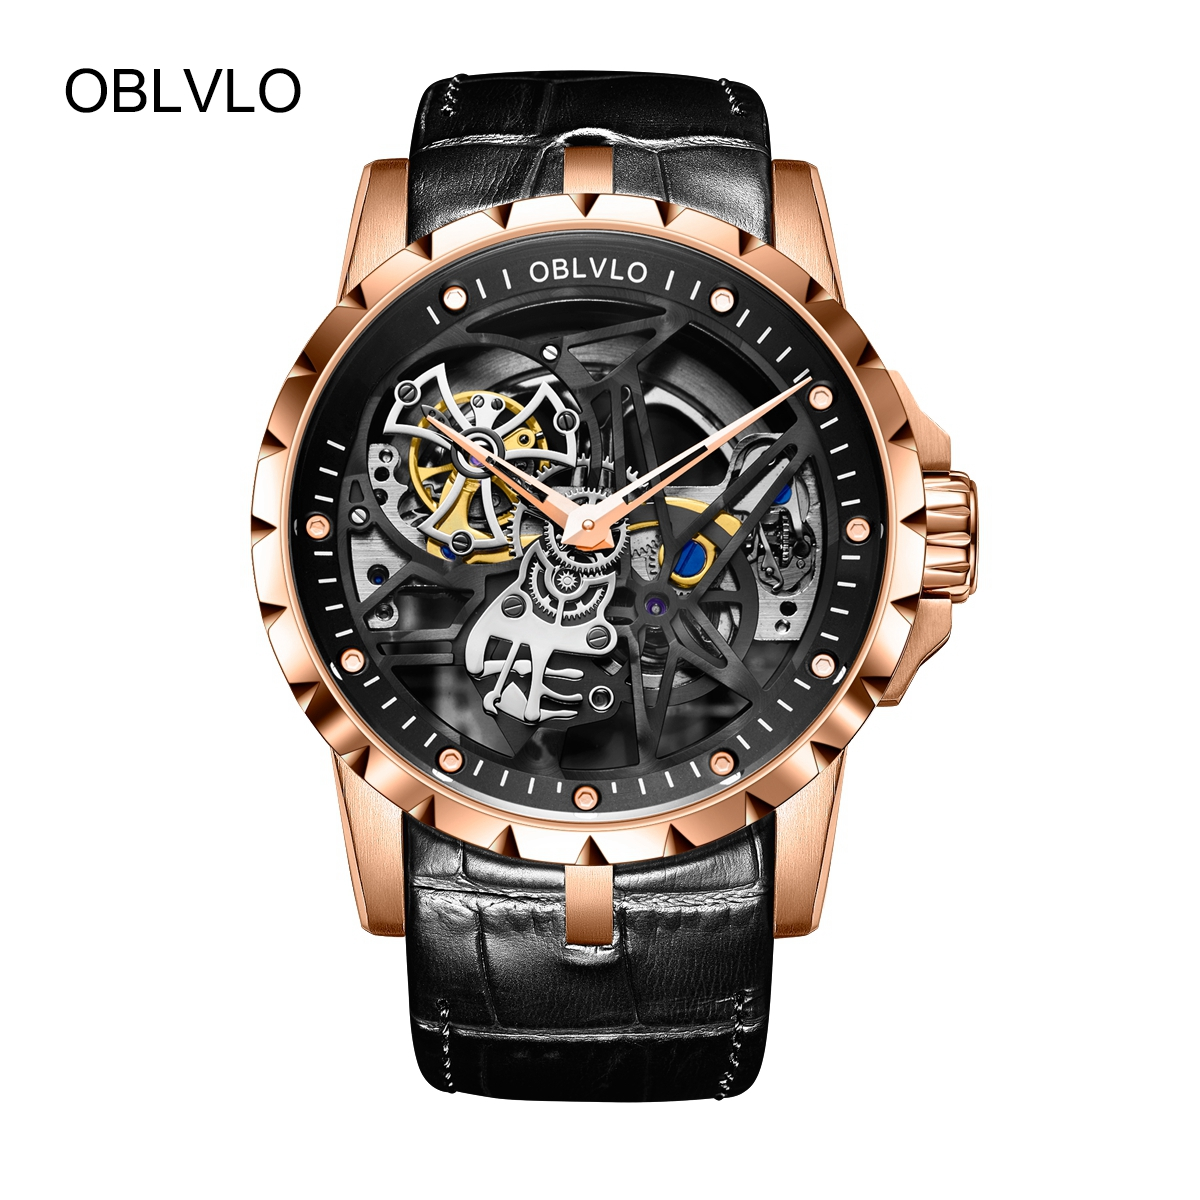 OBLVLO Mens Tourbillon Skeleton Watches Rose Gold Watches Leather Transparent Automatic Watch OBL3603RSBB